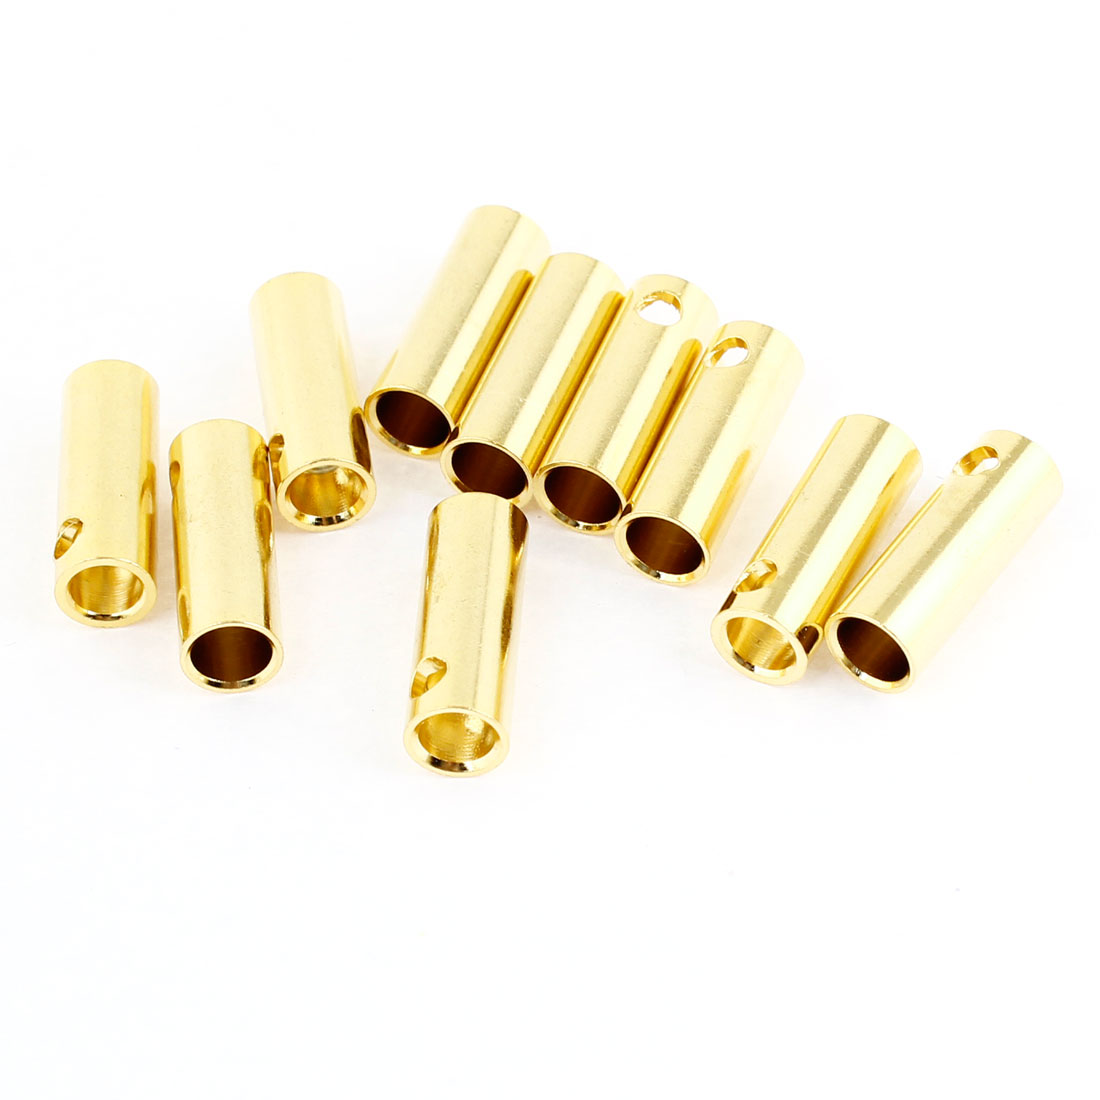 5mm Inside Dia Female Banana Connector Replacement 10 Pcs